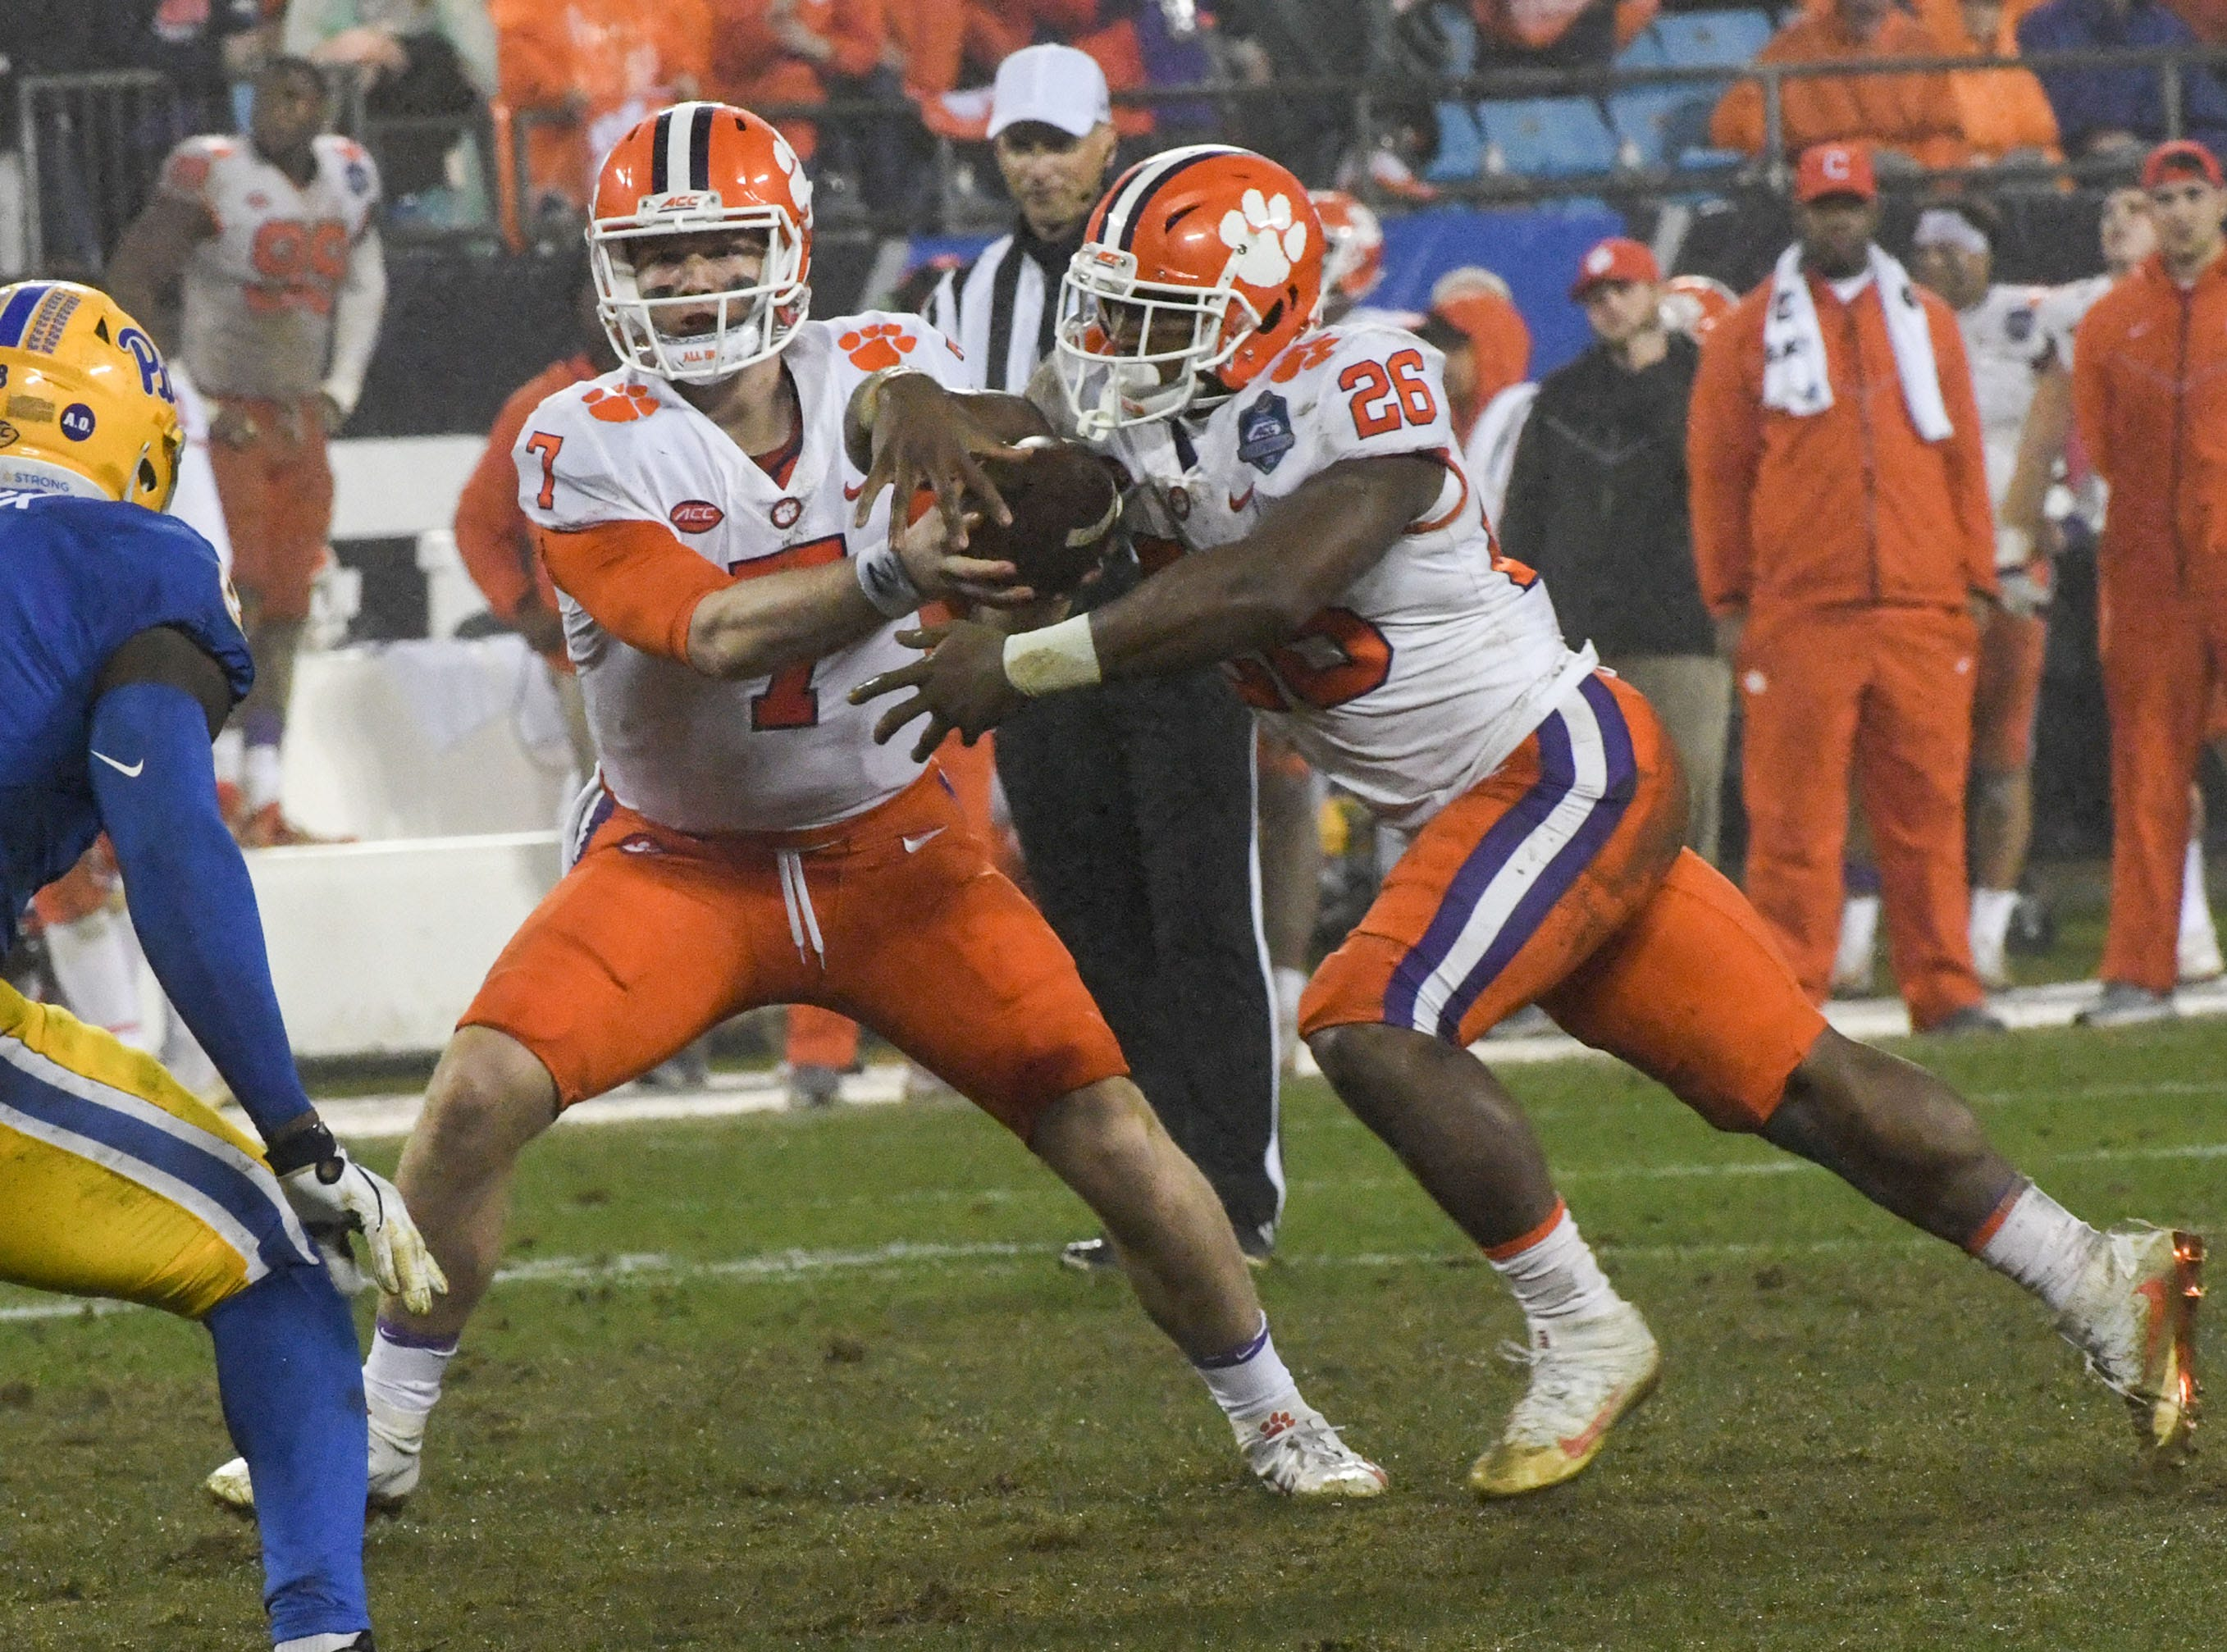 Clemson quarterback Chase Brice (7) hands off to running back Adam Choice (26) during the fourth quarter in Memorial Stadium on Saturday, November 3, 2018.